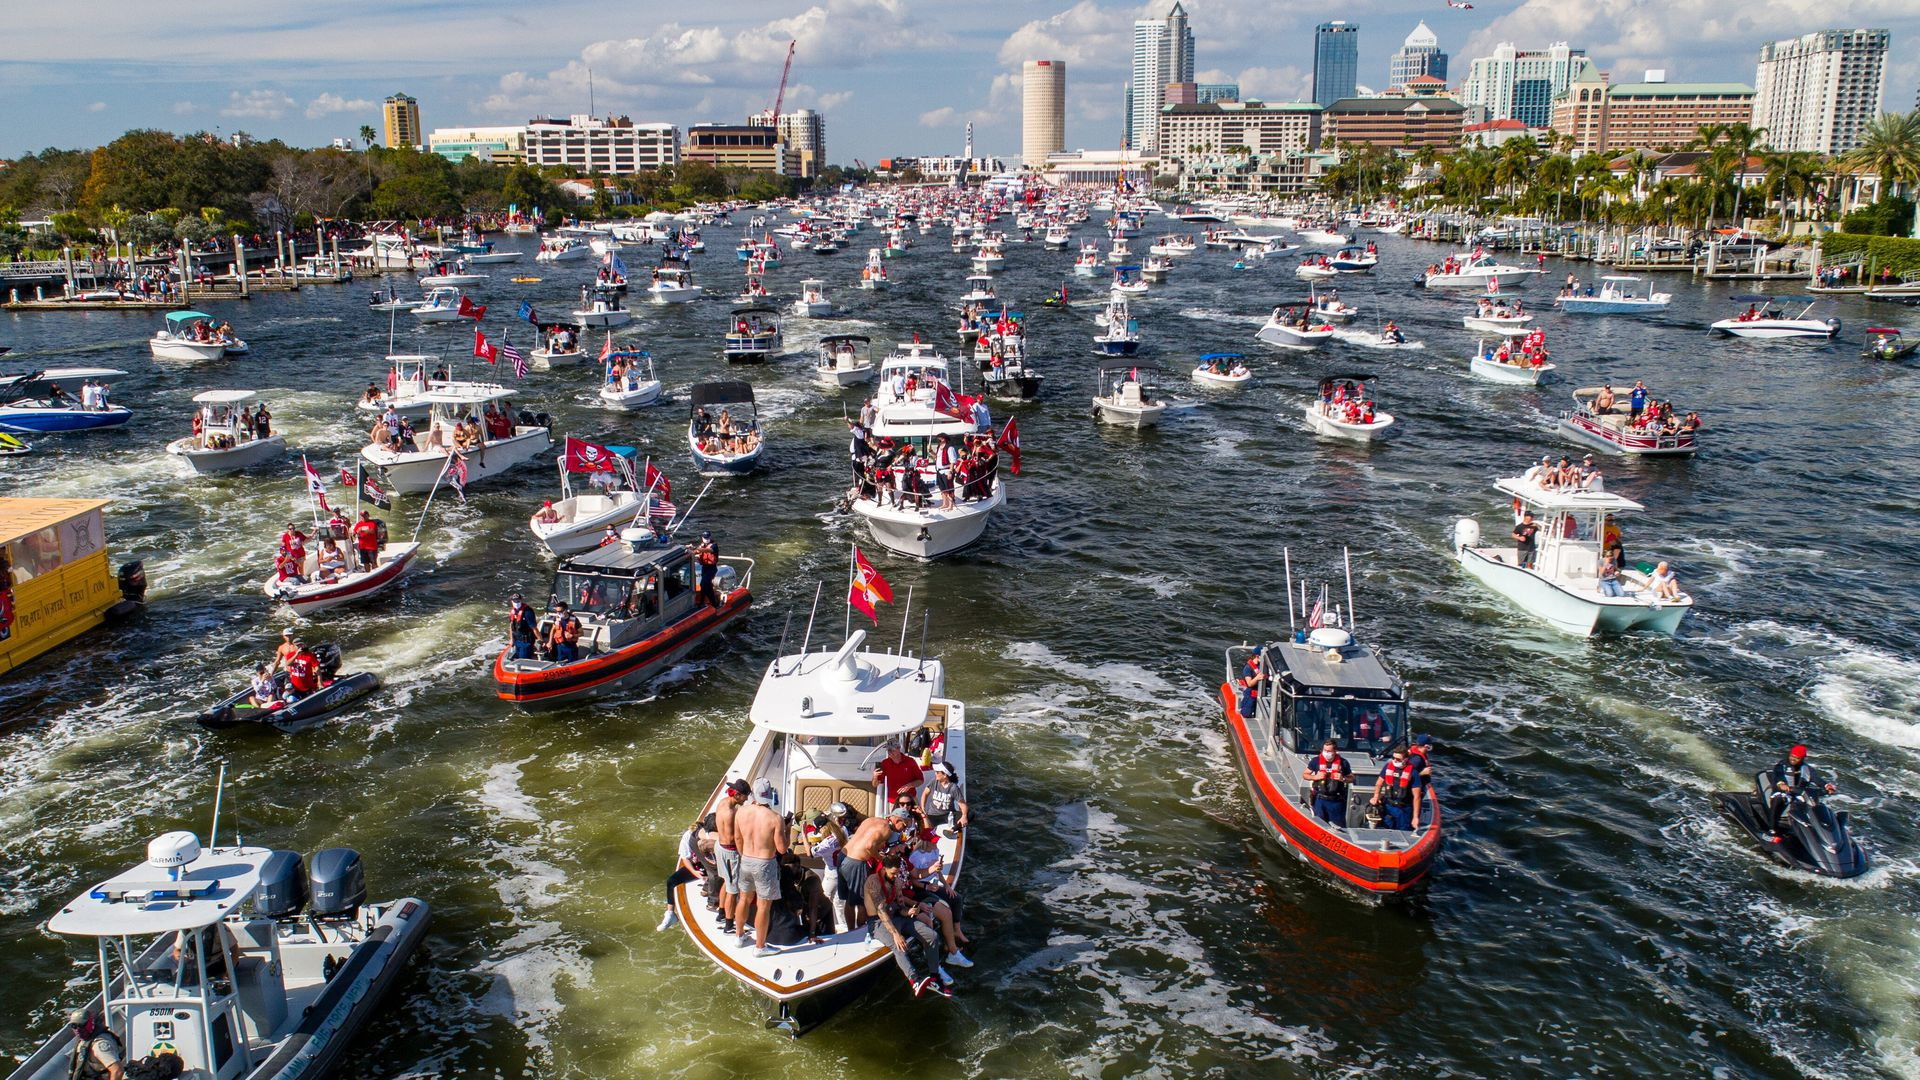 Picture of Super Bowl Victory Boat Parade, with multiple boats on the river